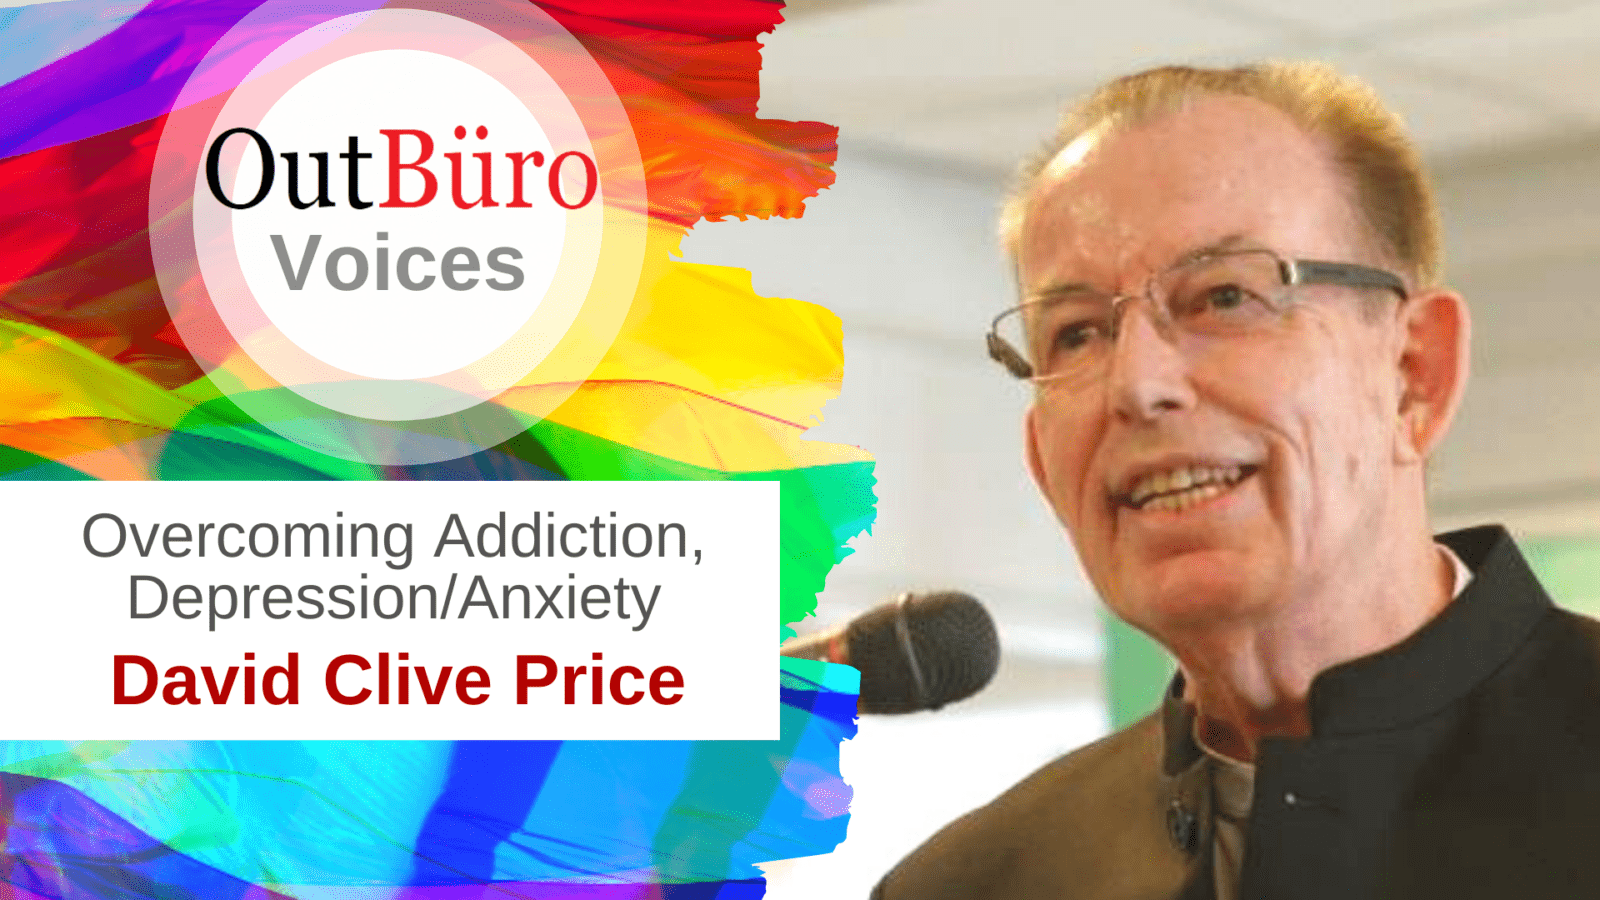 _Overcoming Addiction Depression Anxiety with David Clive Price LGBT Author Coach Professional Consultant Business Owner Video Interview Podcast